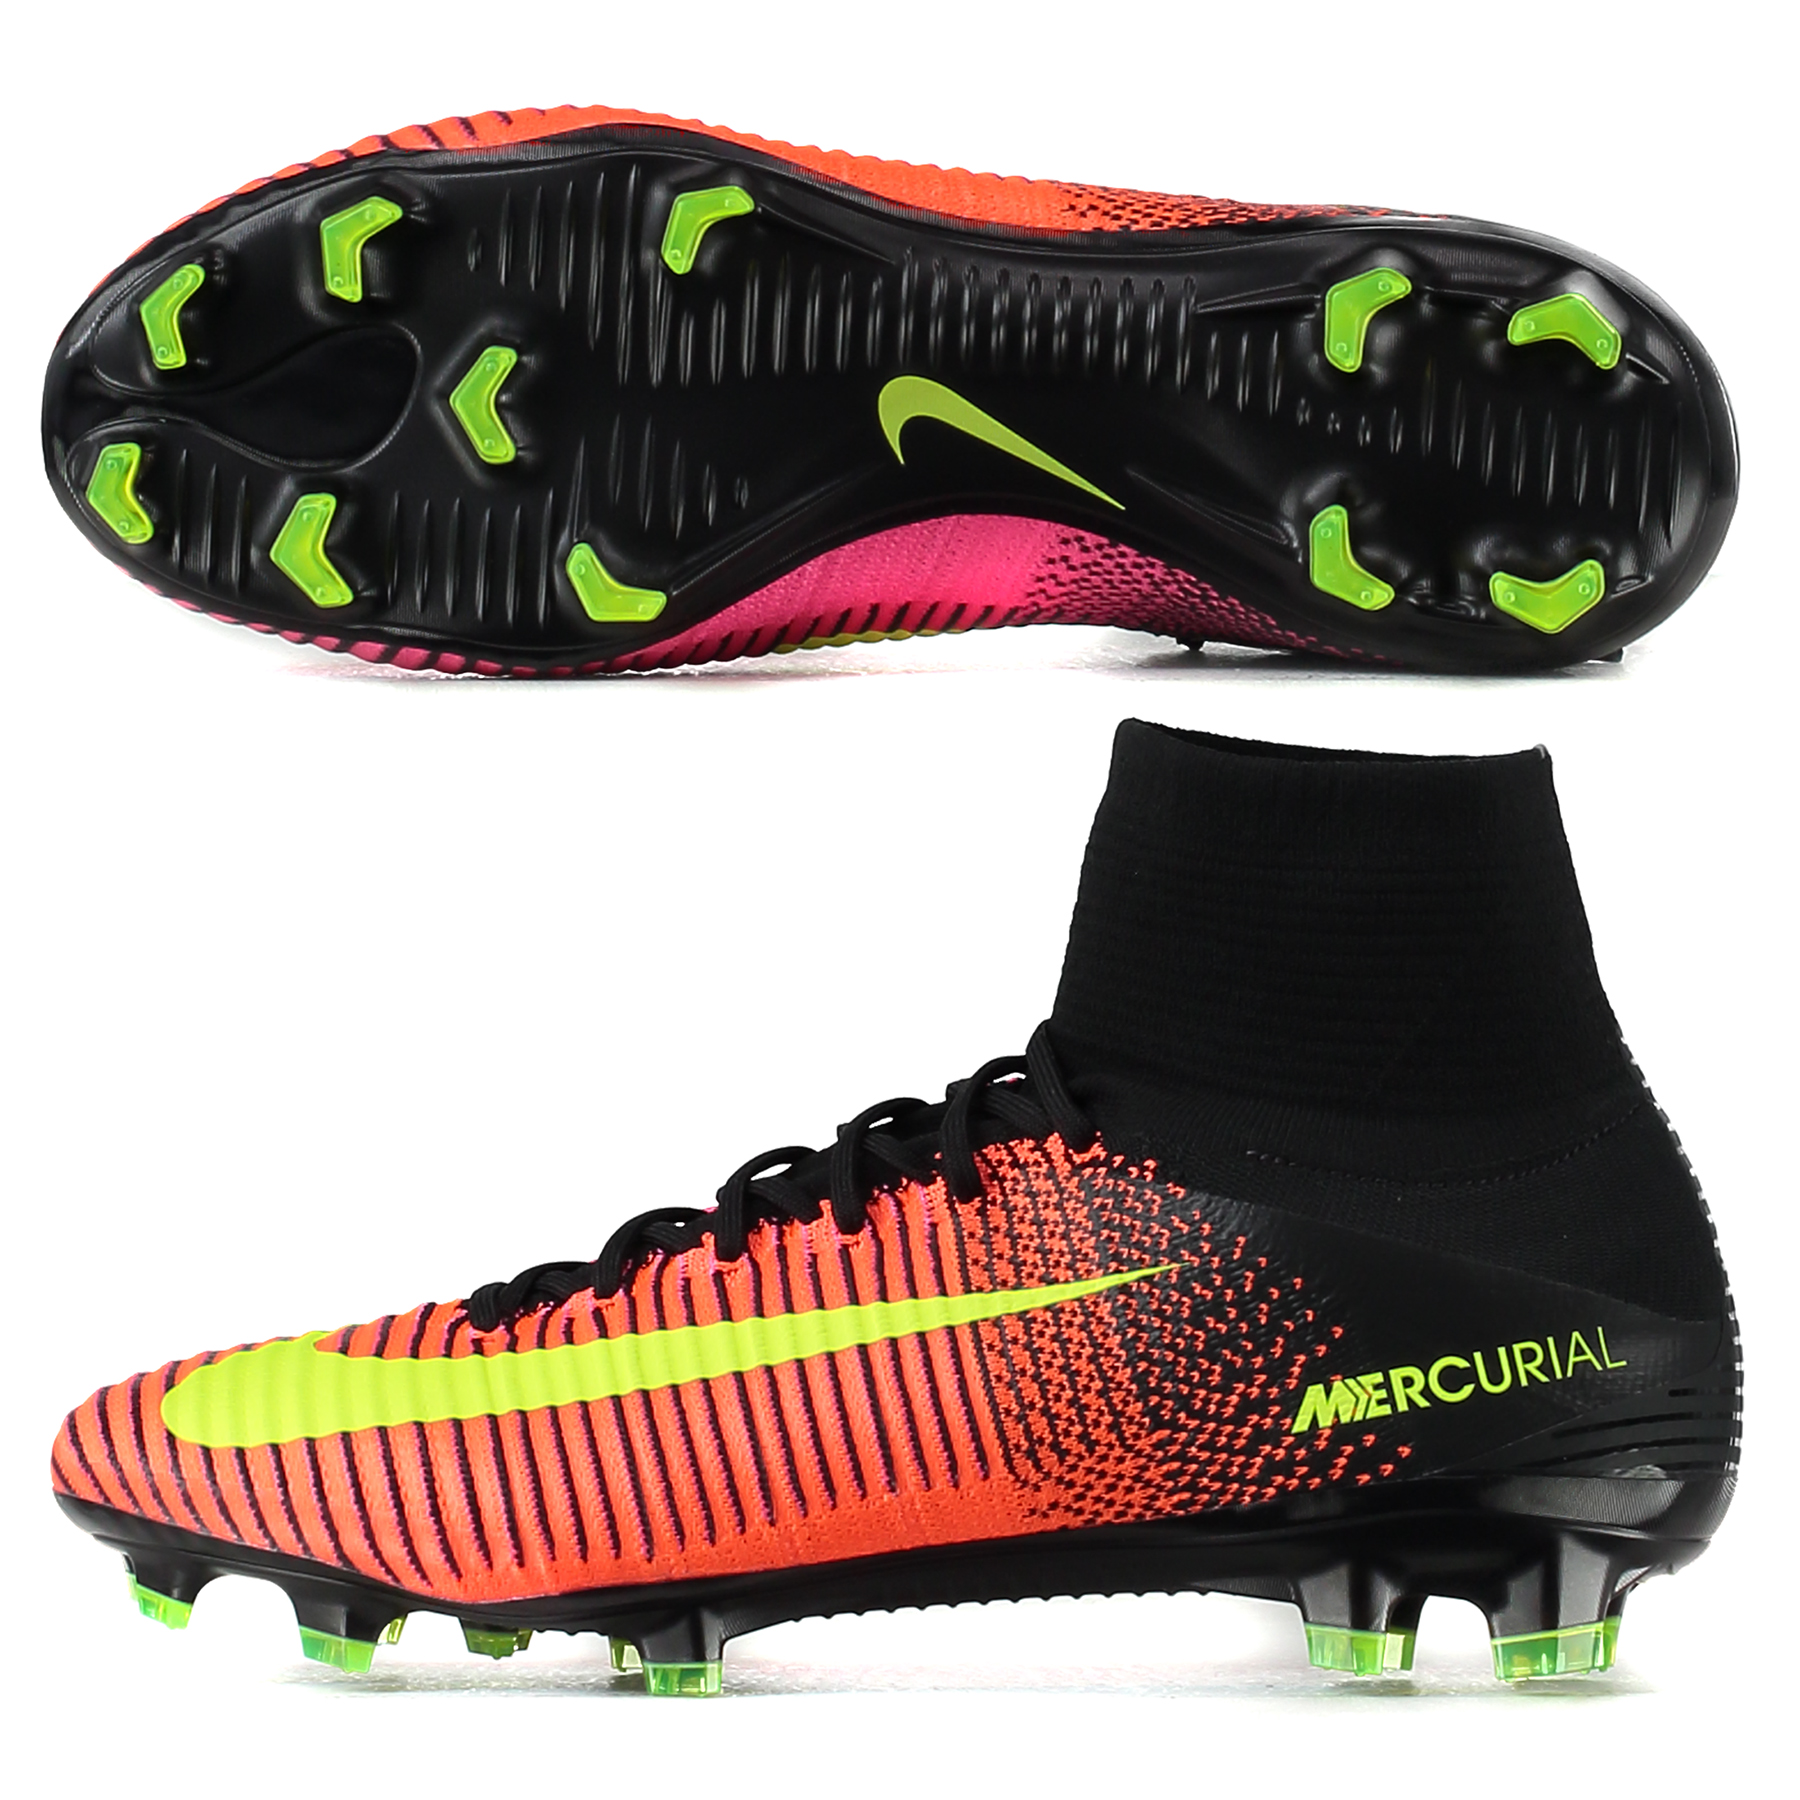 Nike Mercurial Superfly V FG Total Crimson/V